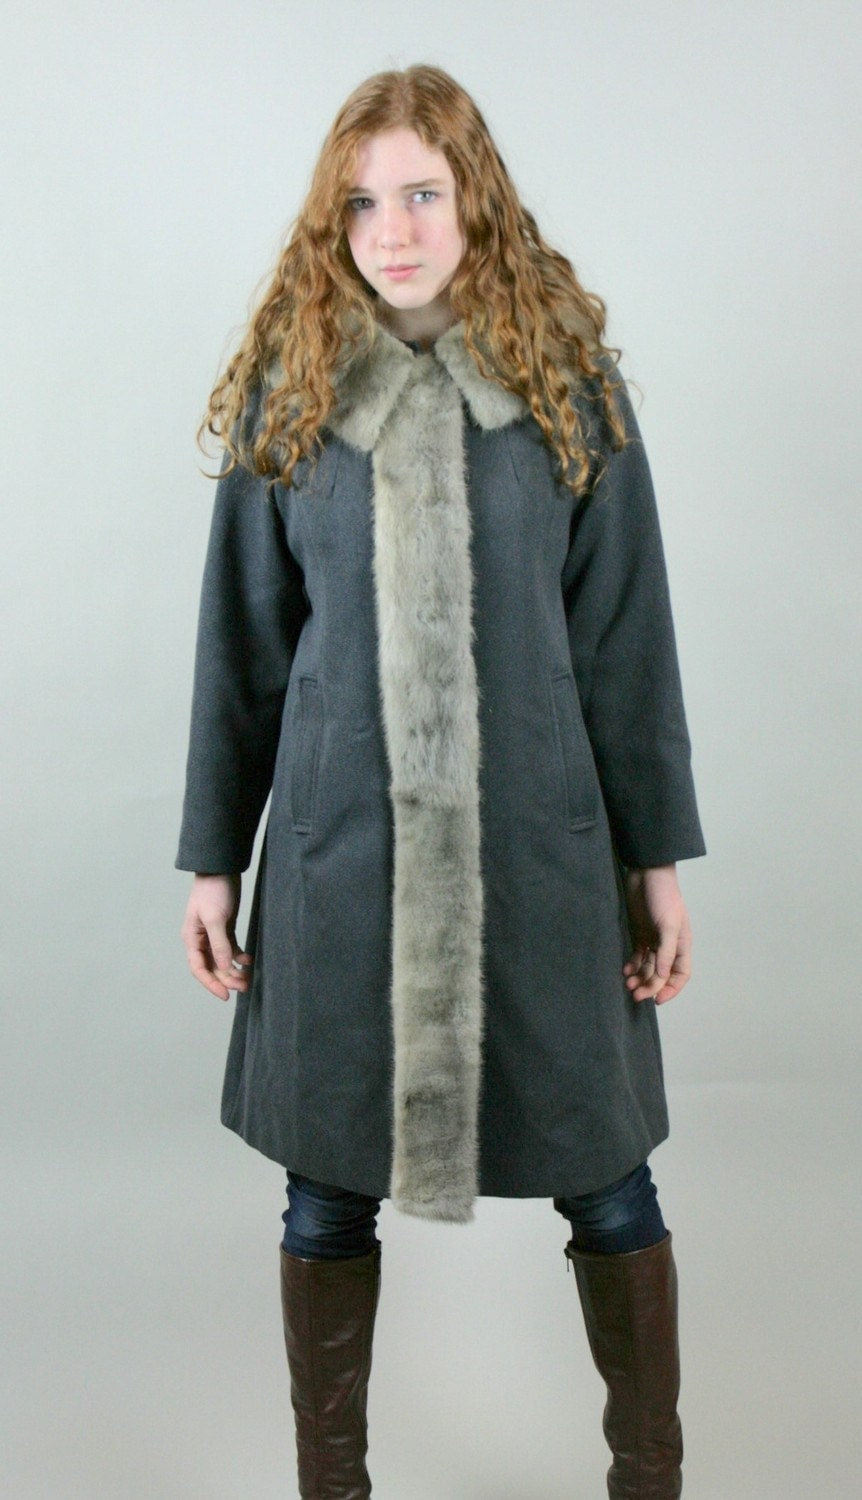 Vintage Swing Coat Australian Worsted Wool Mink Fur Collar Front Trim Slate Gray AMAZING - vetabartholomew